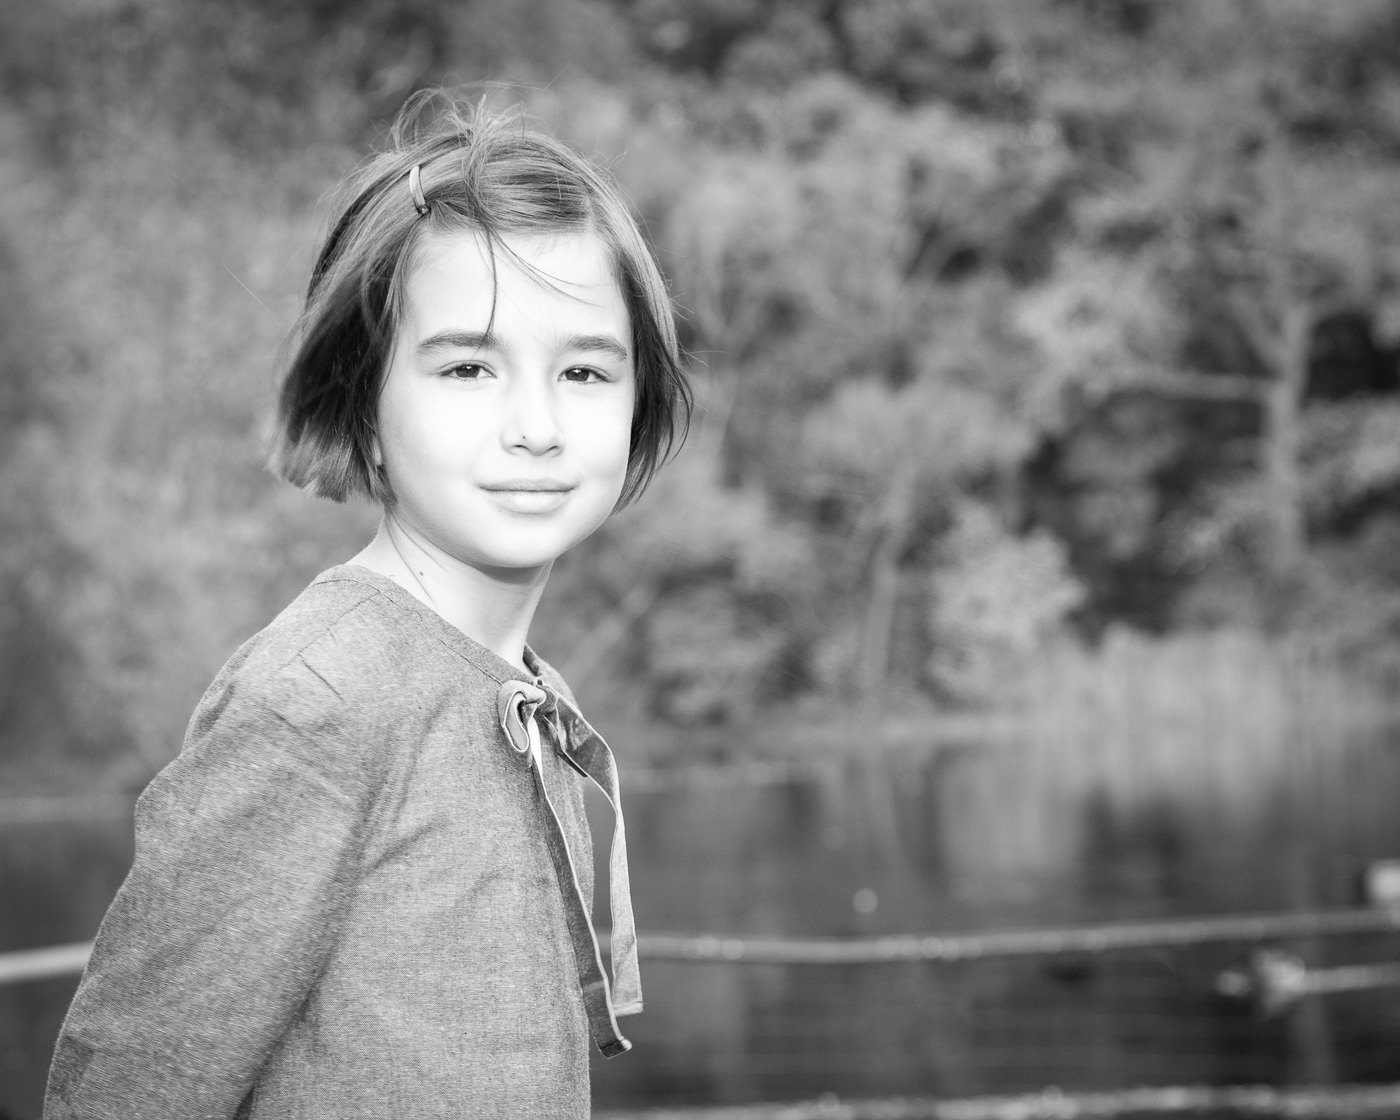 Child portrait photography - B&W